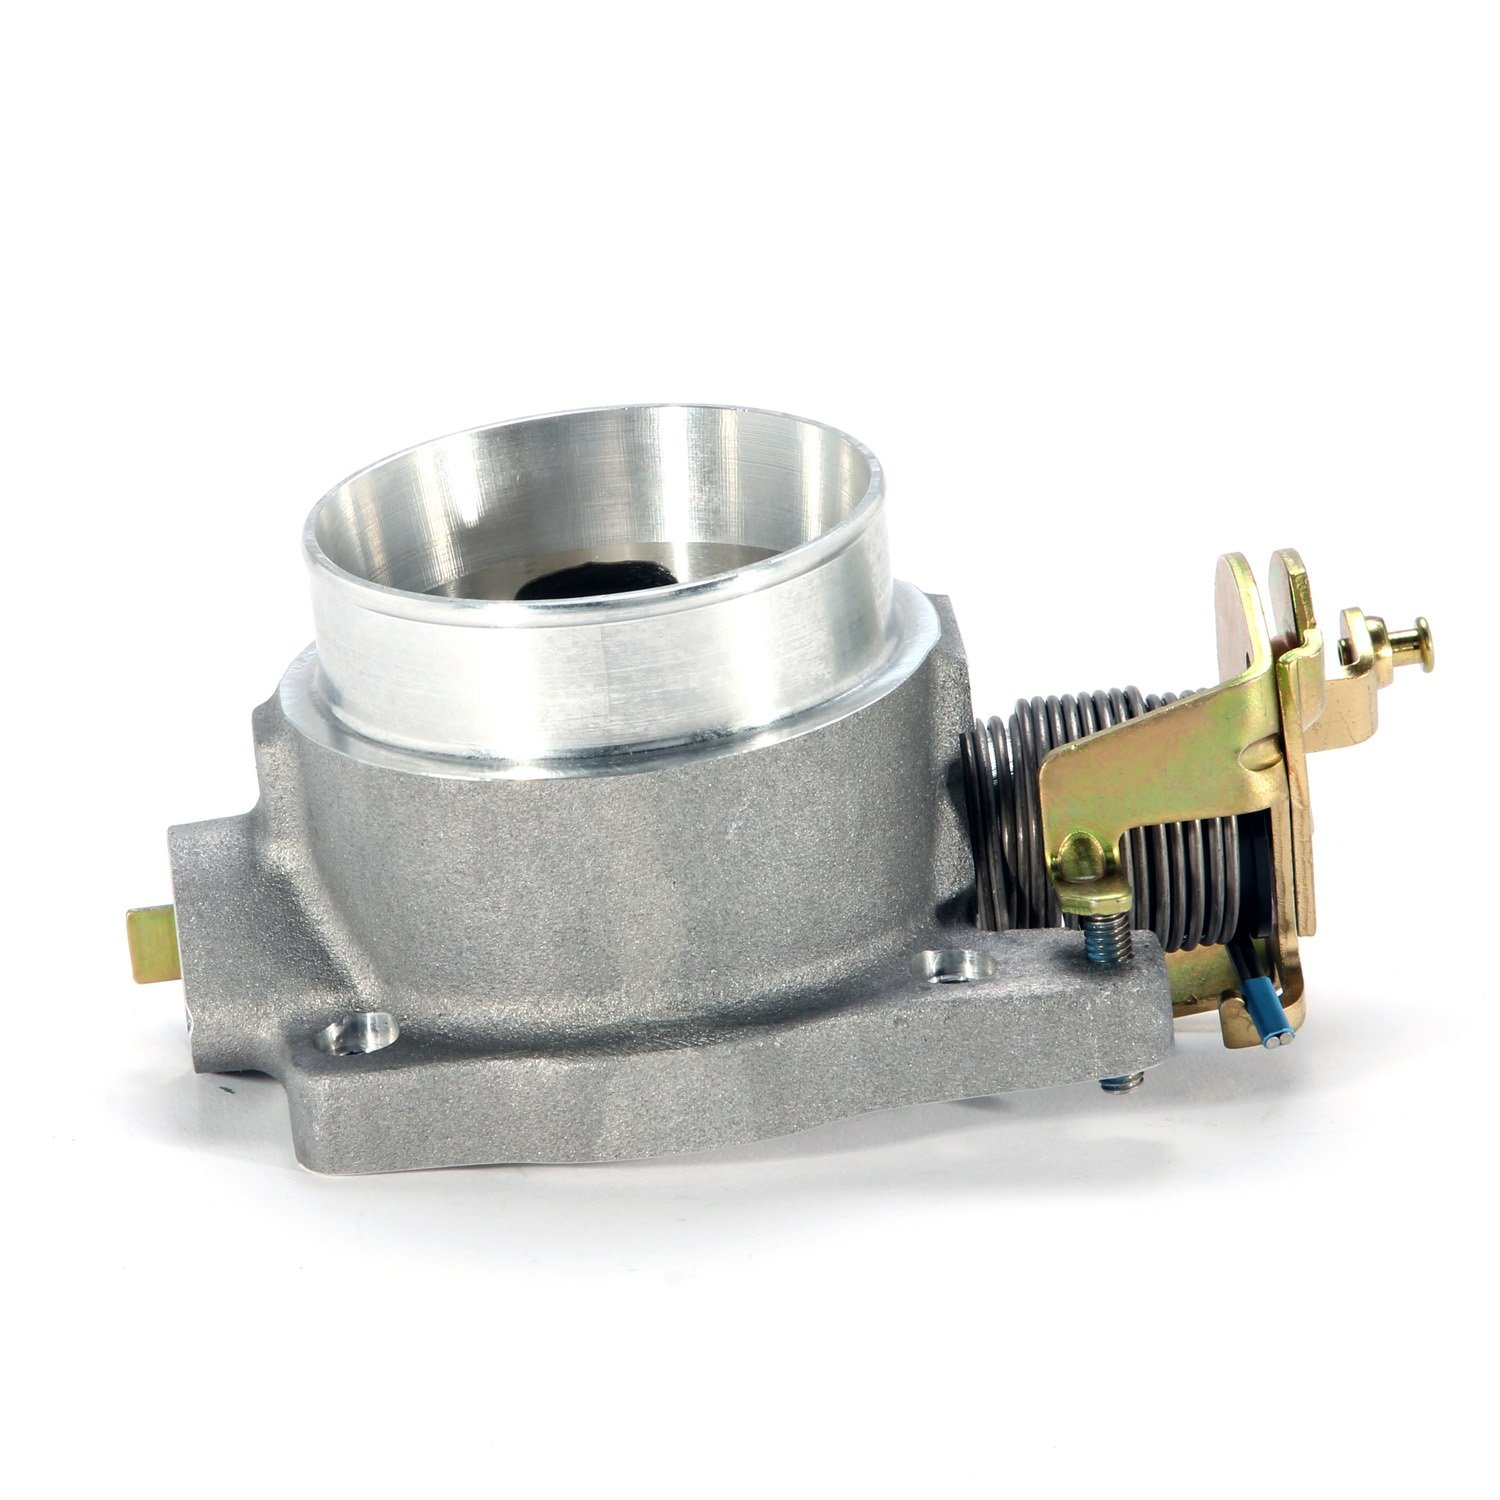 Bbk 1652 65mm Throttle Body High Flow Power Plus Replacing Fuel Filter 2001 Mustang V6 Series For Ford 38l Automotive